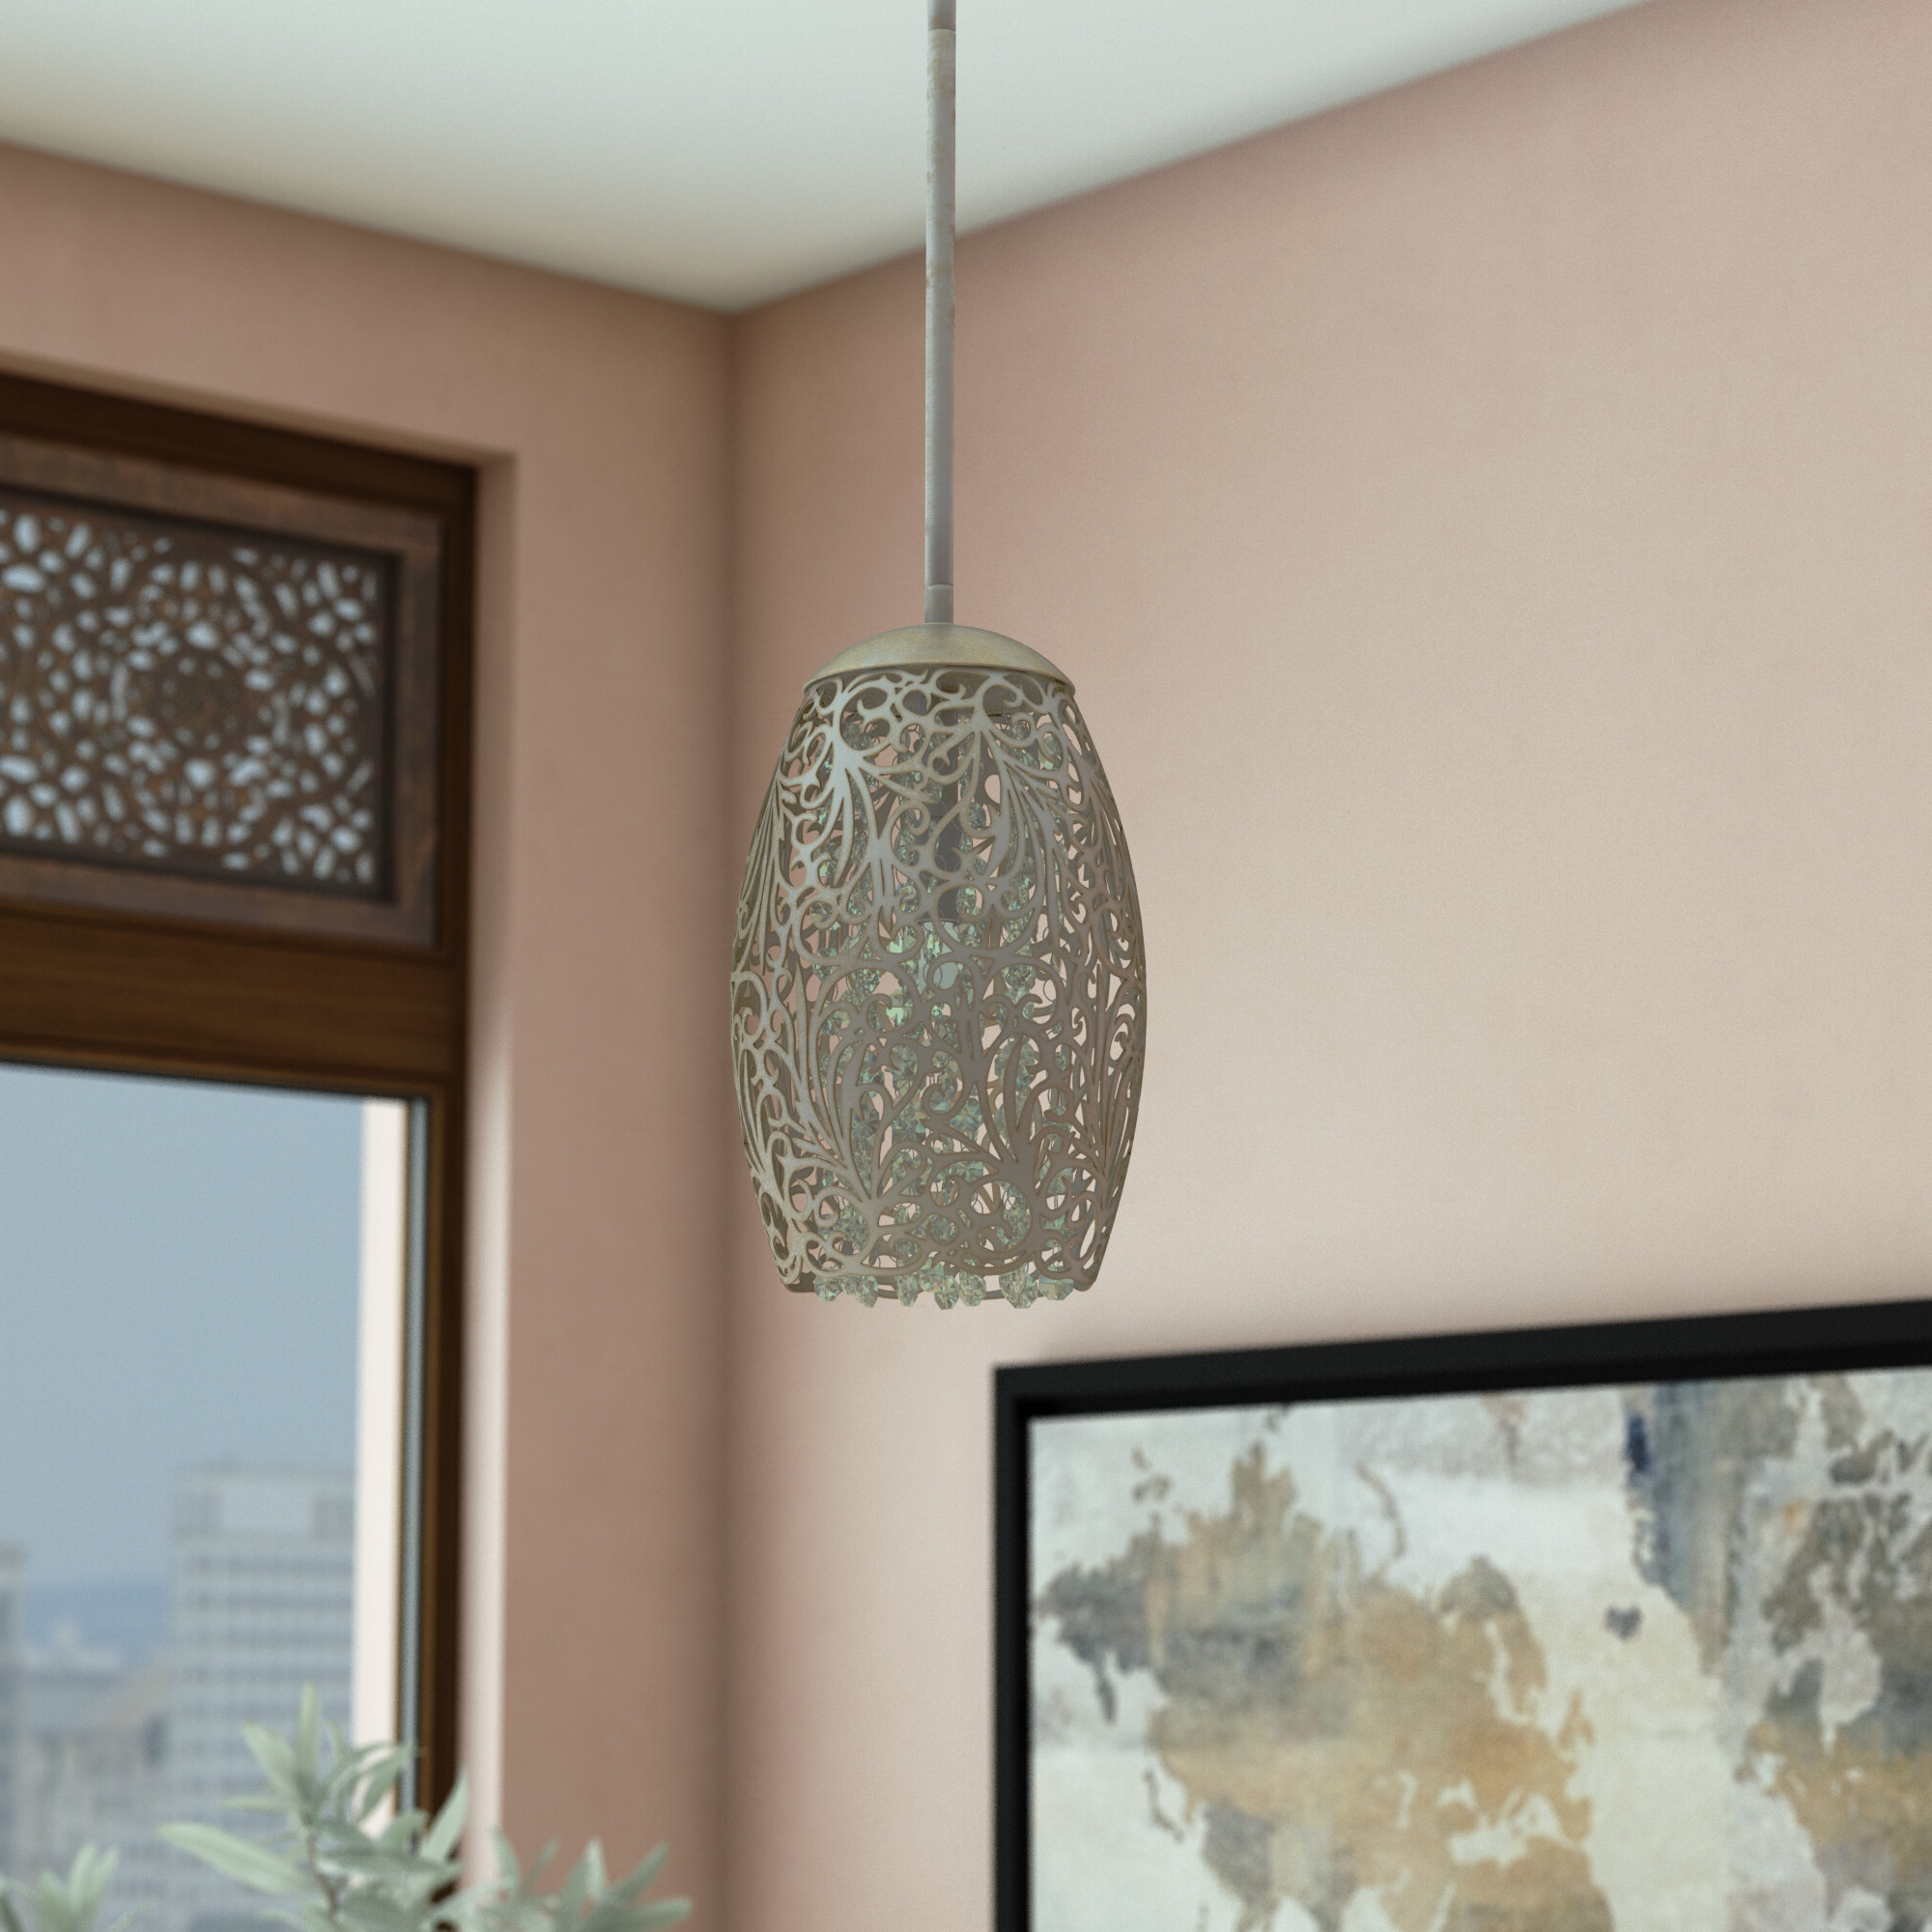 Kraker 1 Light Single Cylinder Pendant Regarding Famous Kraker 1 Light Single Cylinder Pendants (Gallery 1 of 25)